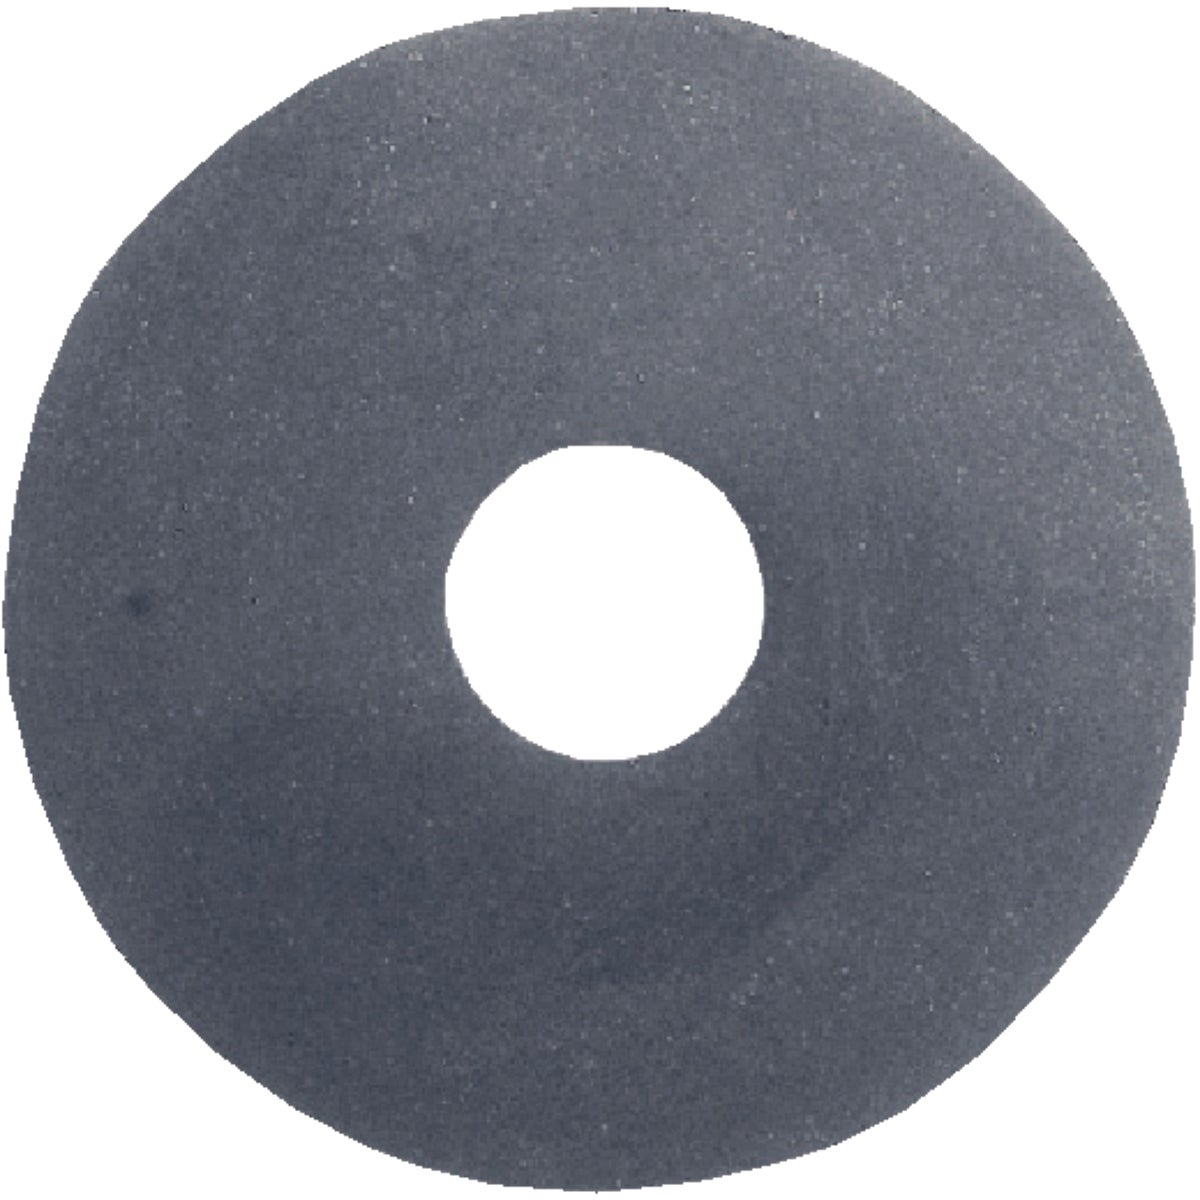 "1-1/4""OD WASHER - 61806B by Danco Perfect Match"